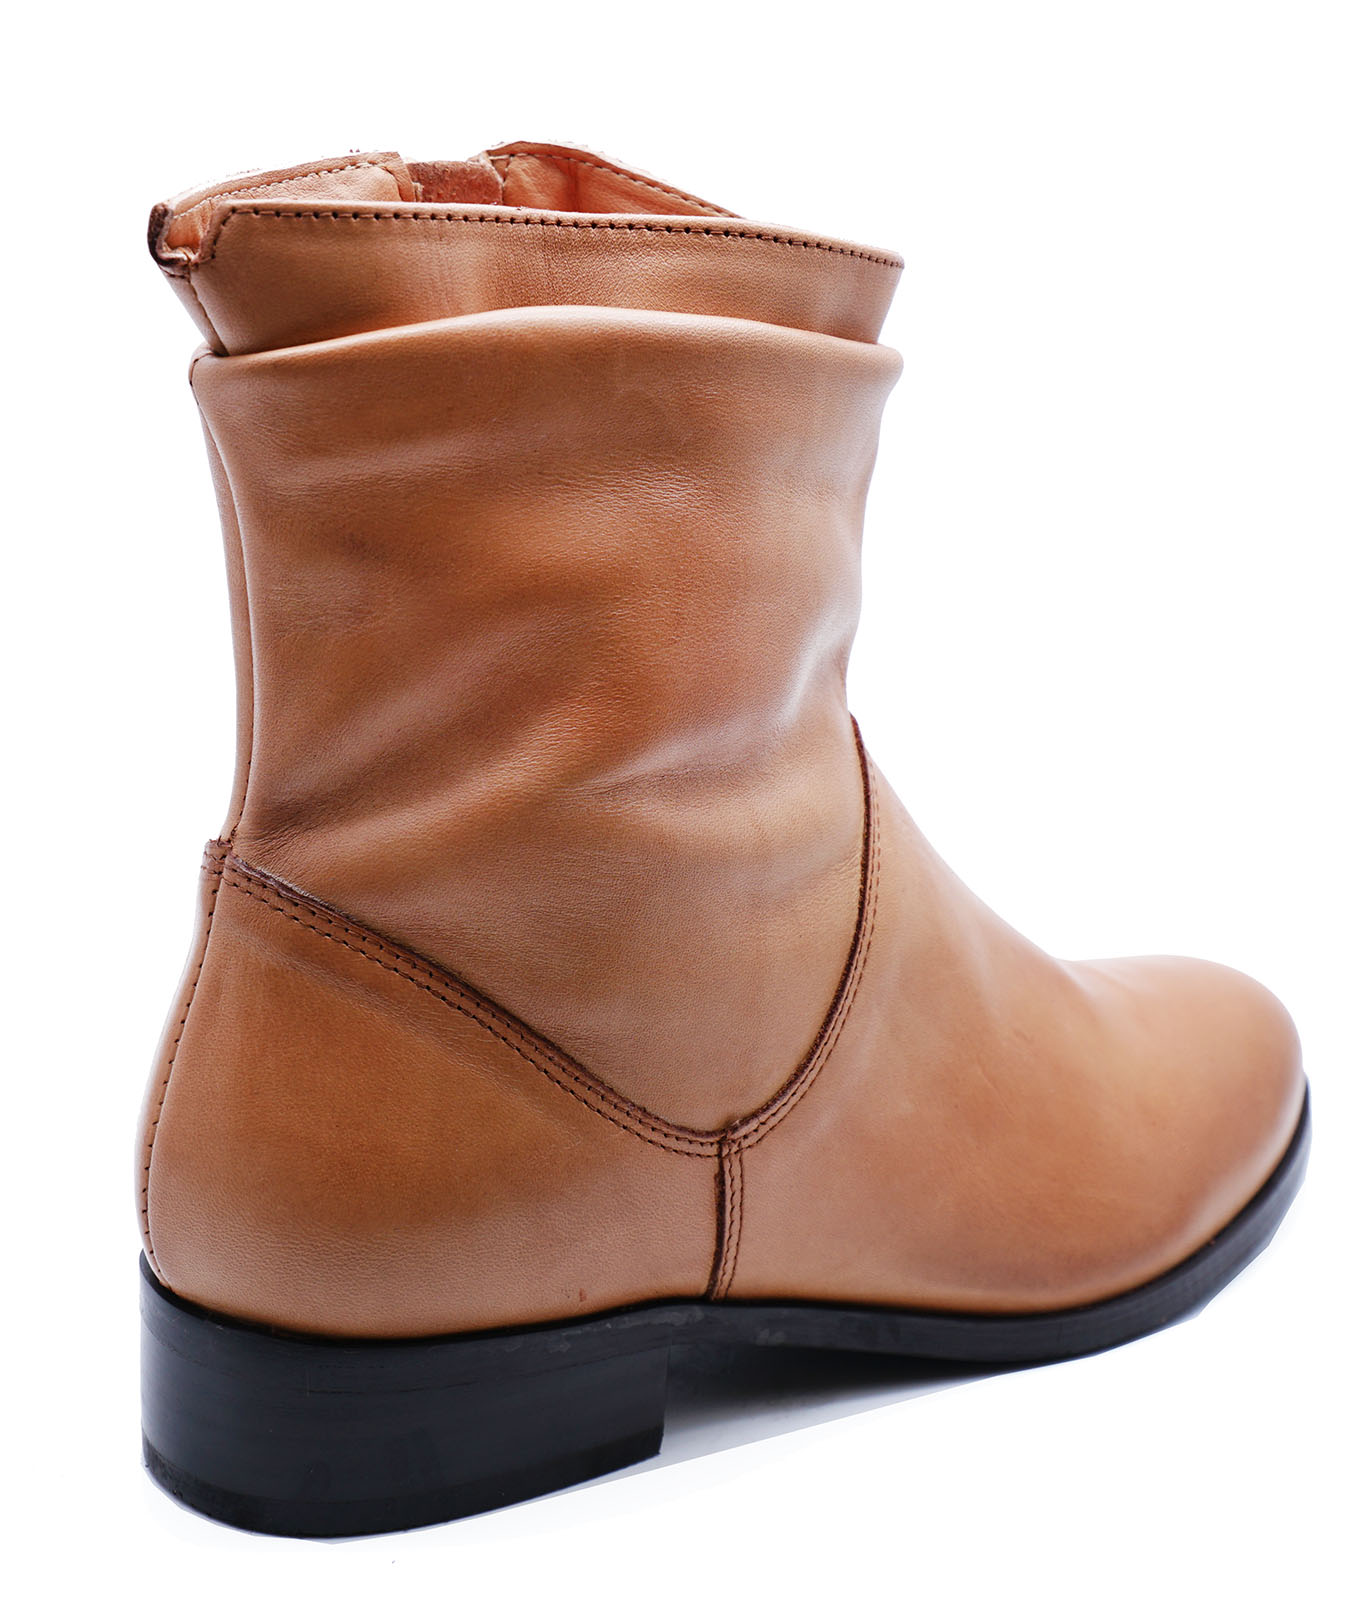 LADIES-FLAT-GENUINE-LEATHER-TAN-ZIP-UP-ANKLE-CALF-BOOTS-COMFY-SHOES-SIZES-2-9 thumbnail 9